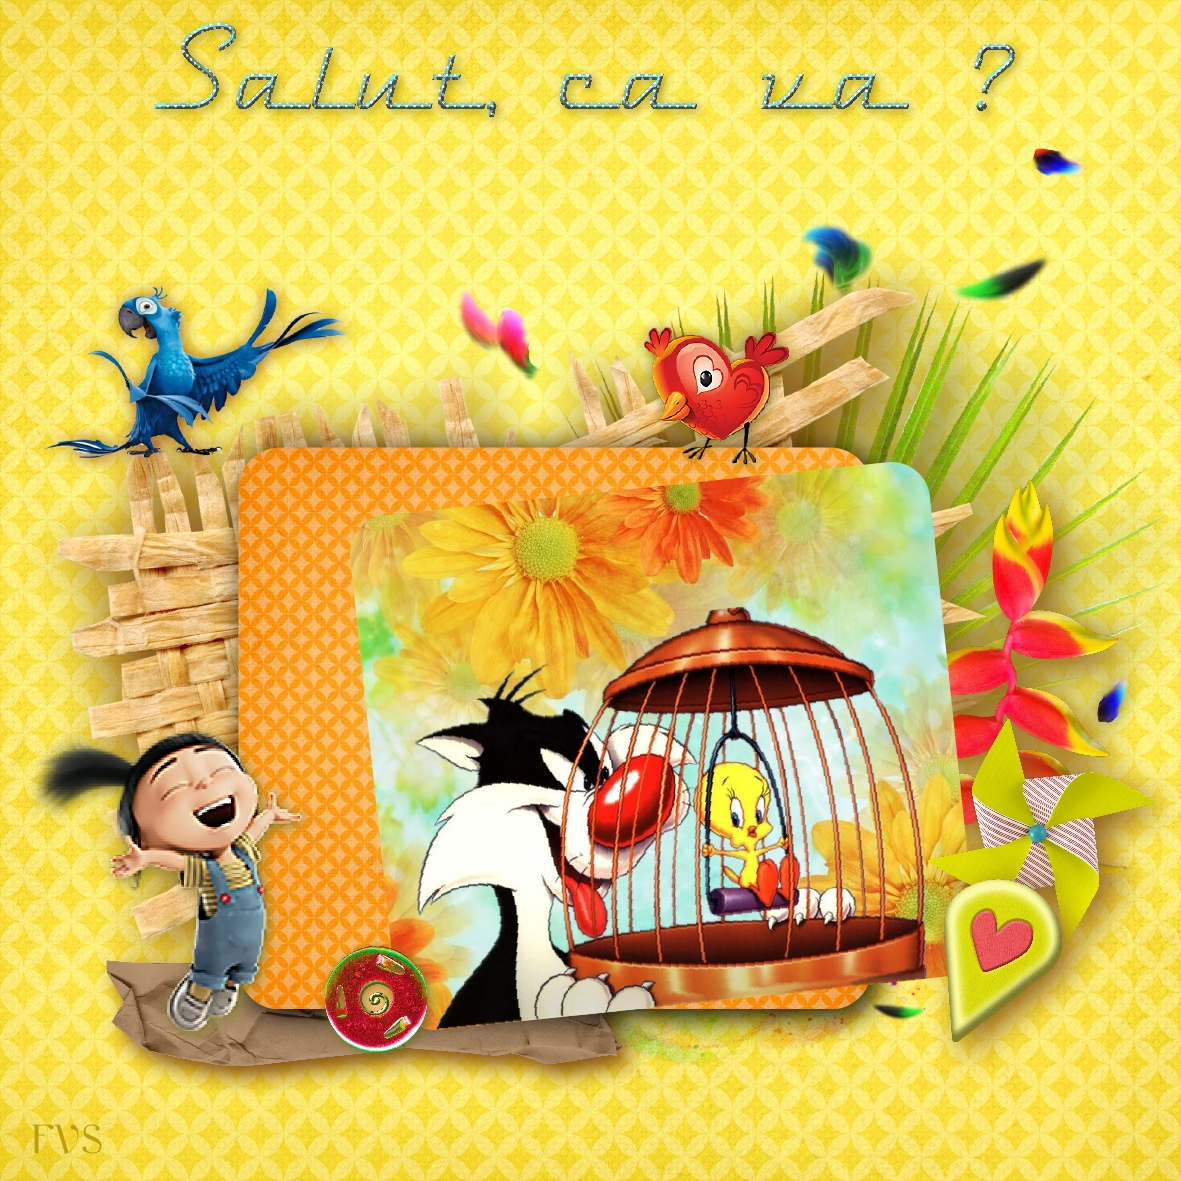 CP-CARTOON002-Salut-Titi et Grosminet-FVS